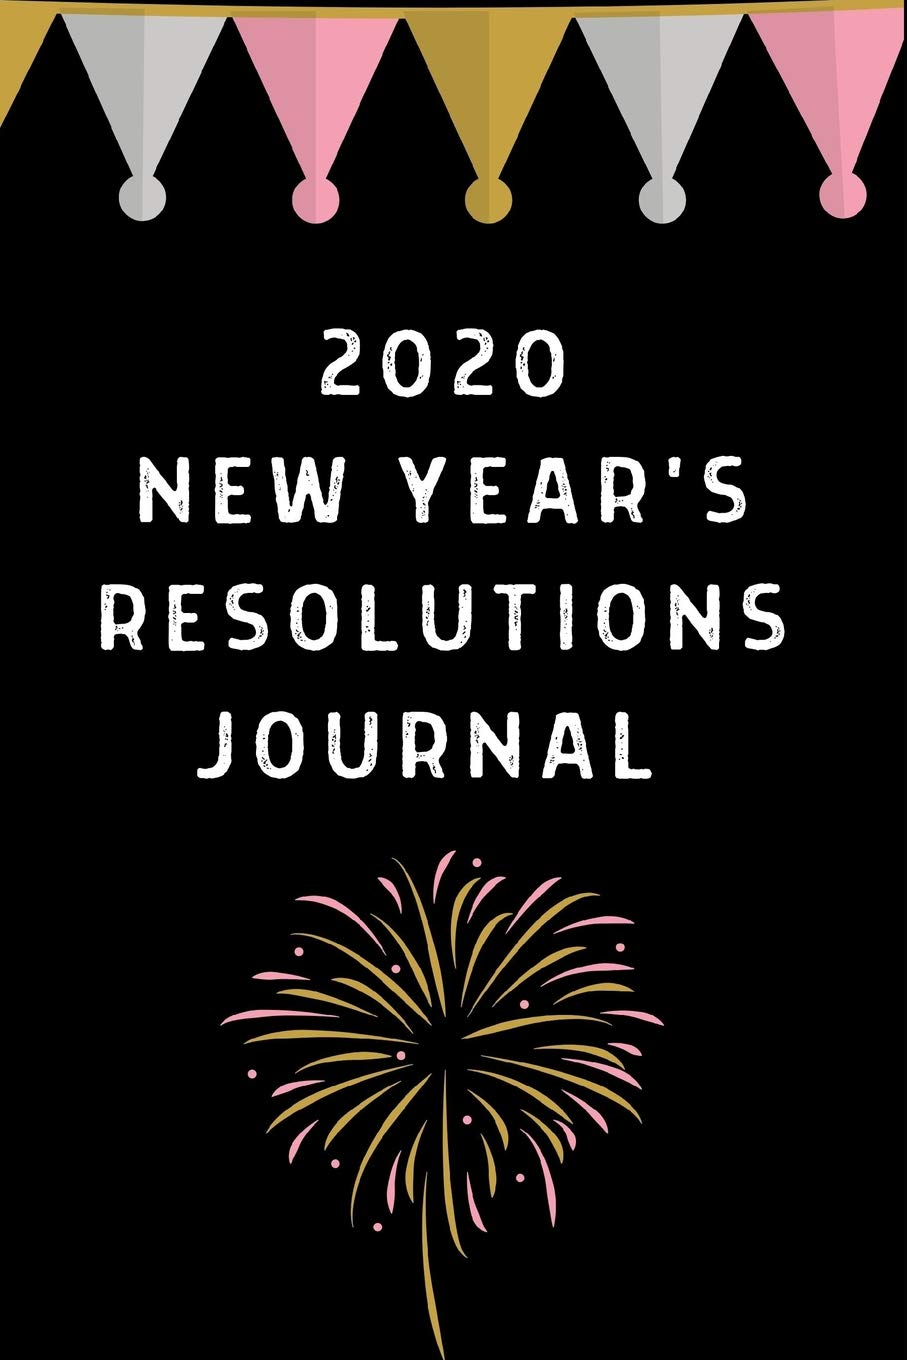 New Years Resolutions 2020.2020 New Year S Resolutions Journal 2020 Happy New Year